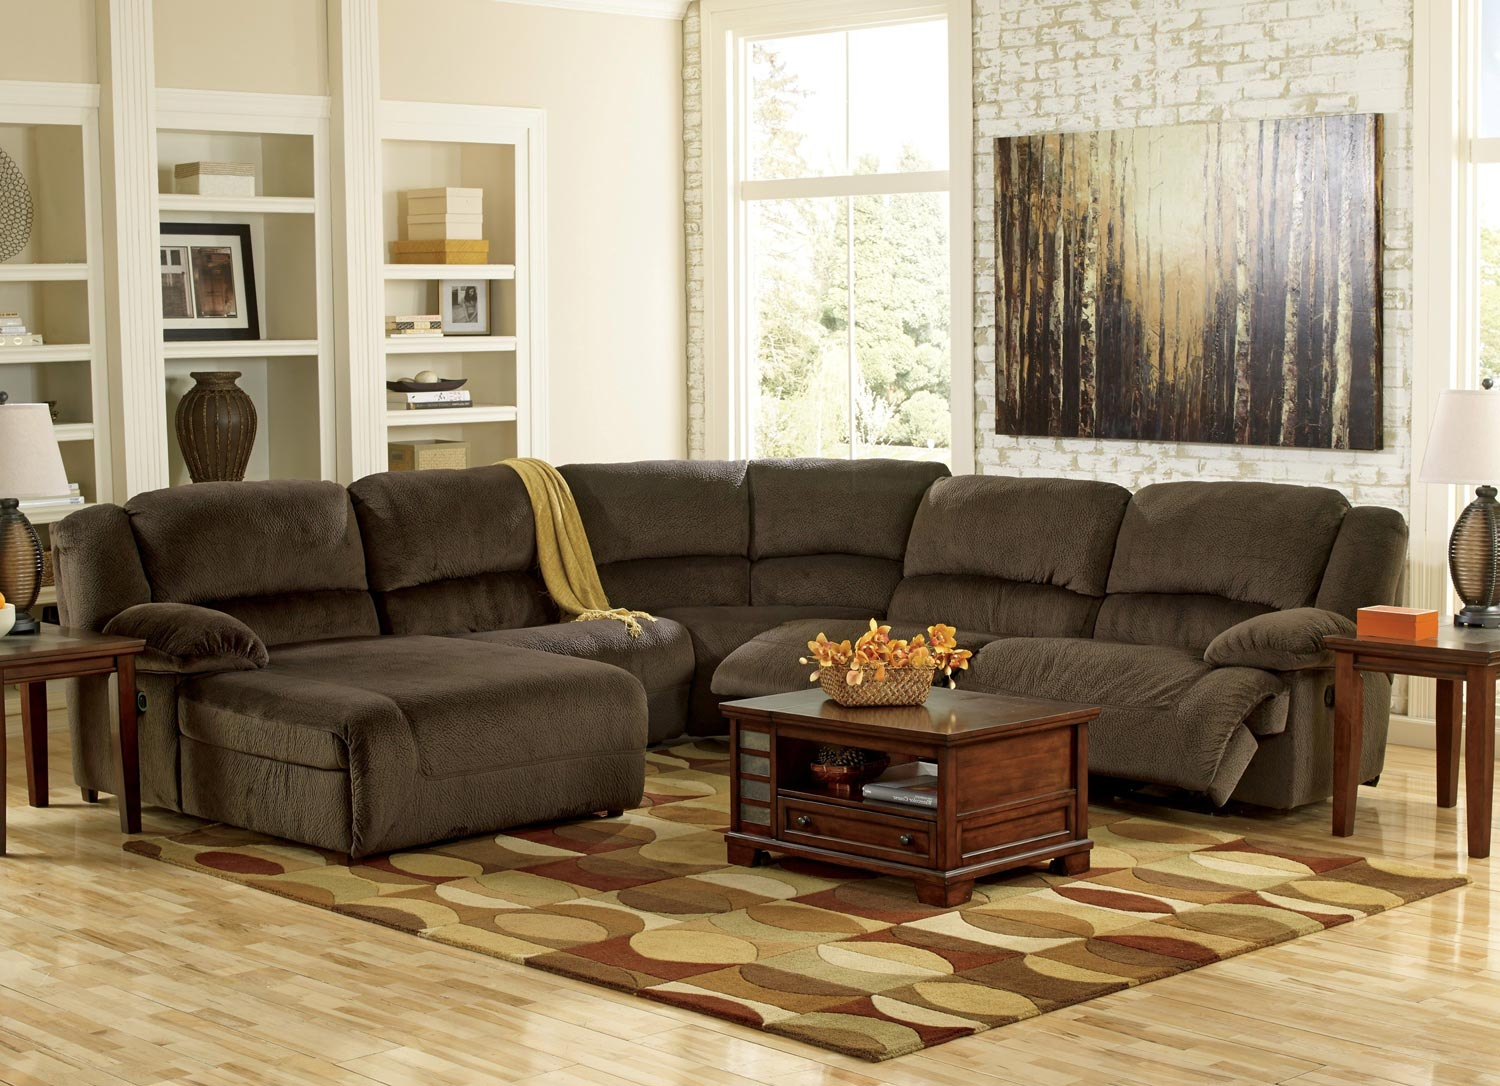 Marvelous photograph of Living Room Furniture (144 products) with #AB4C20 color and 1500x1086 pixels